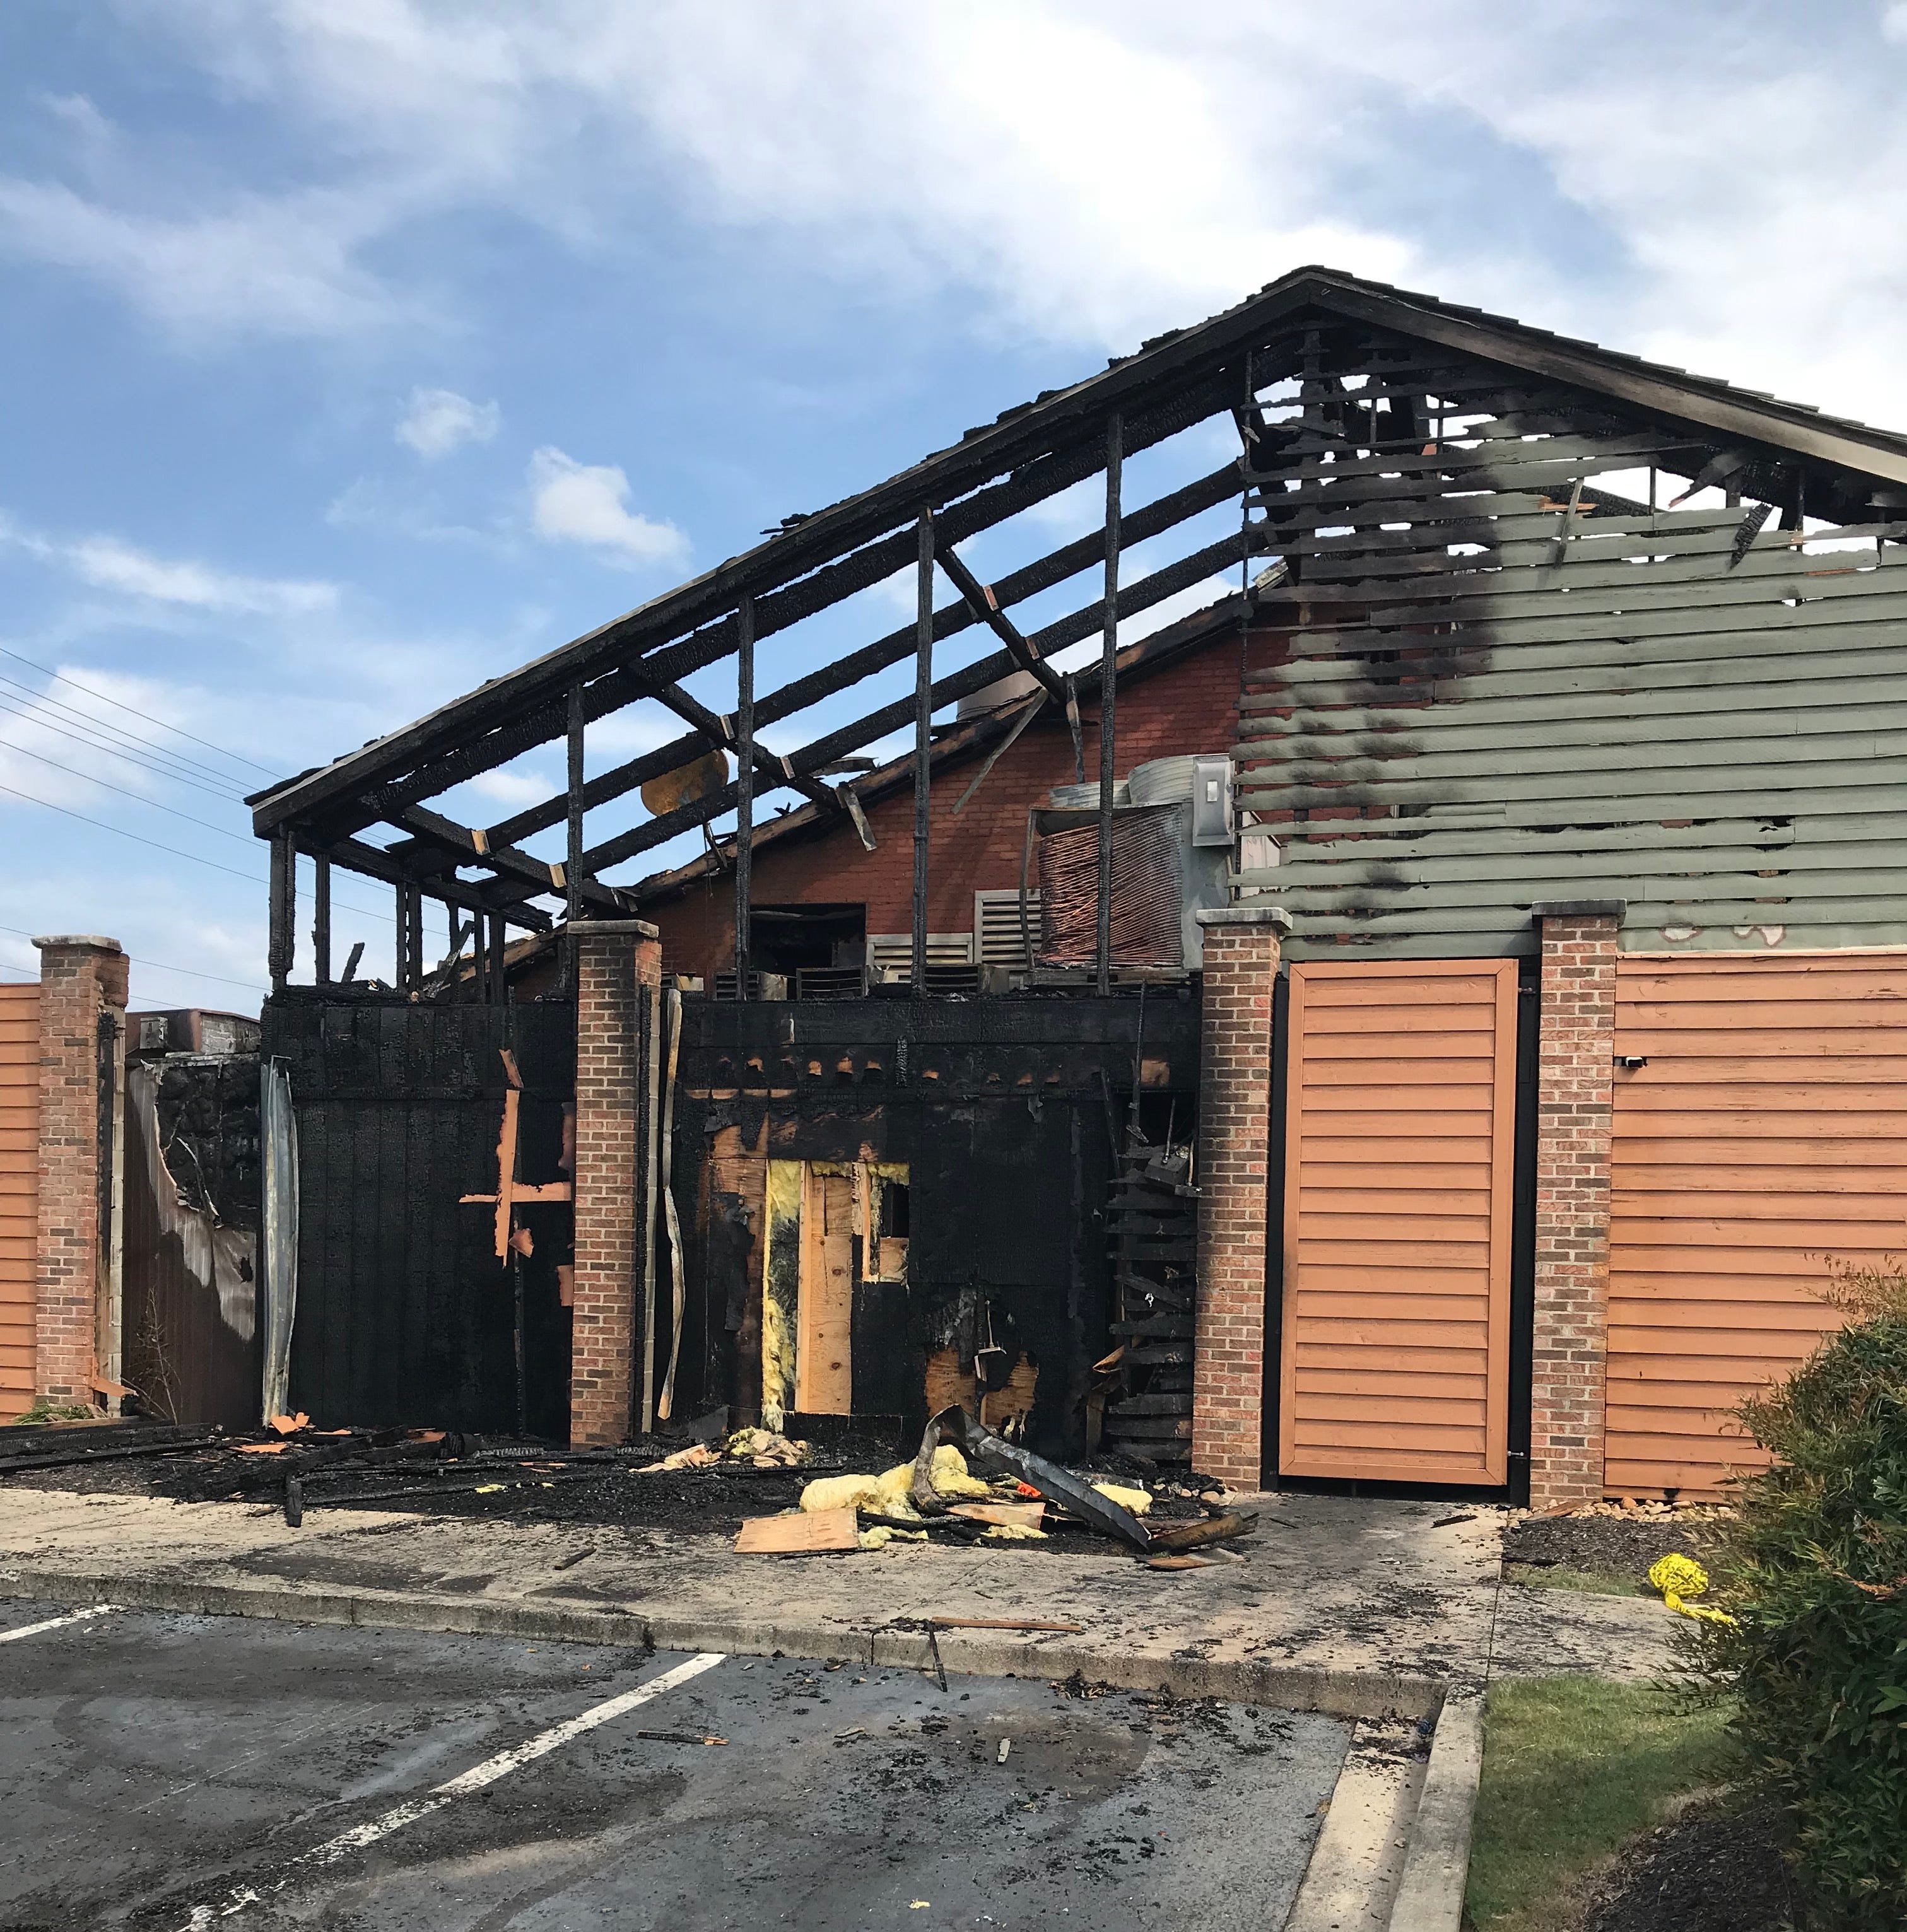 Rafferty's fire in Greenville likely accidental, battalion chief says; restaurant was full